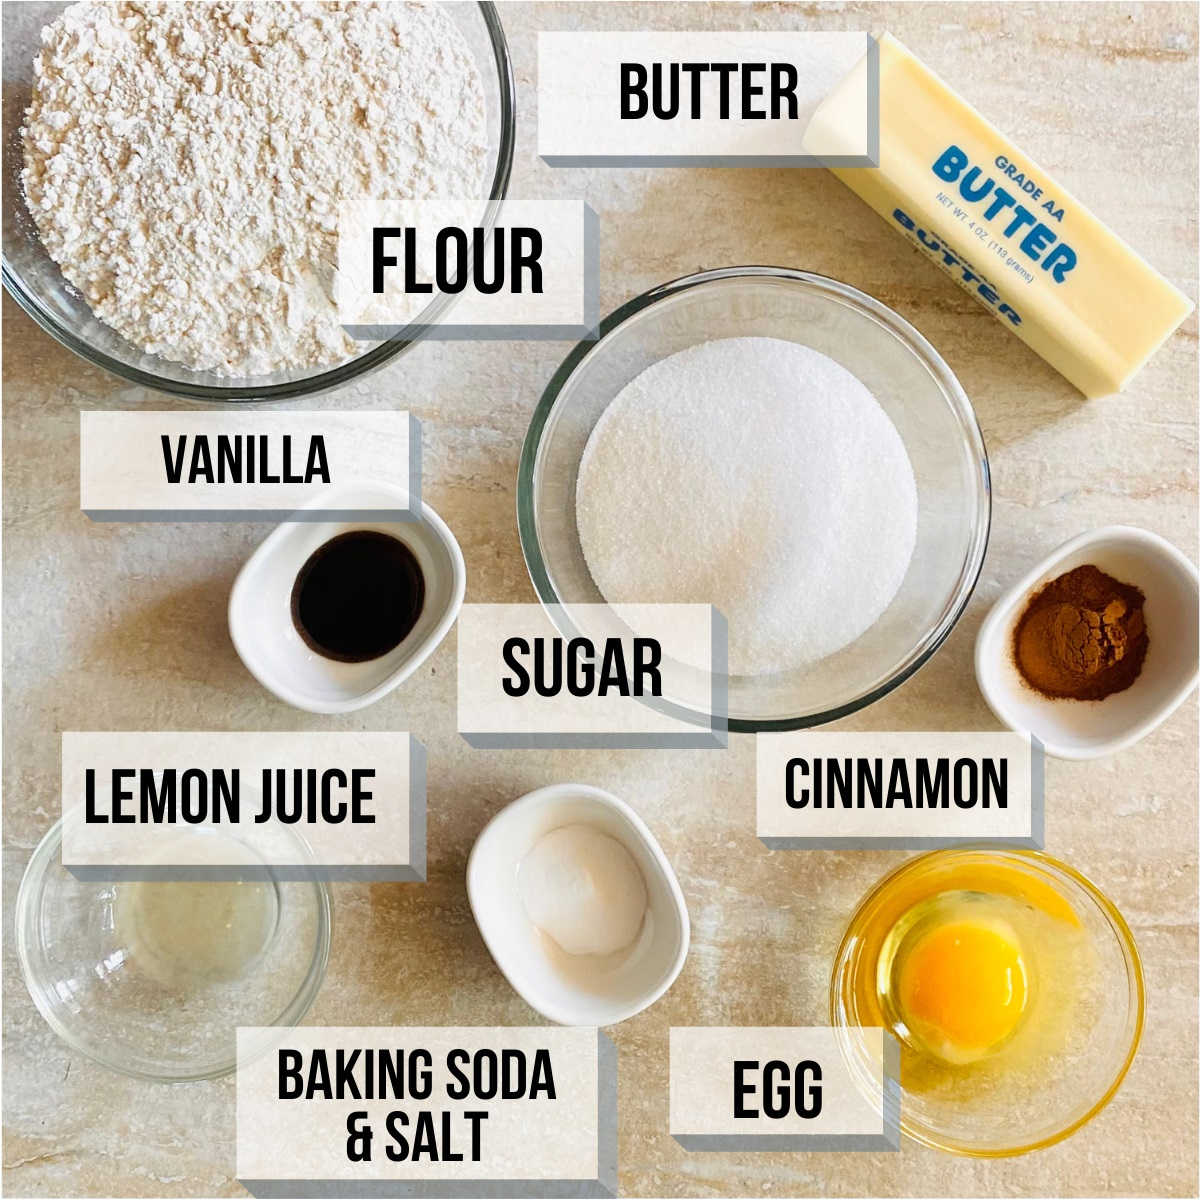 labeled photo of individual ingredients to make snickerdoodles without cream of tartar